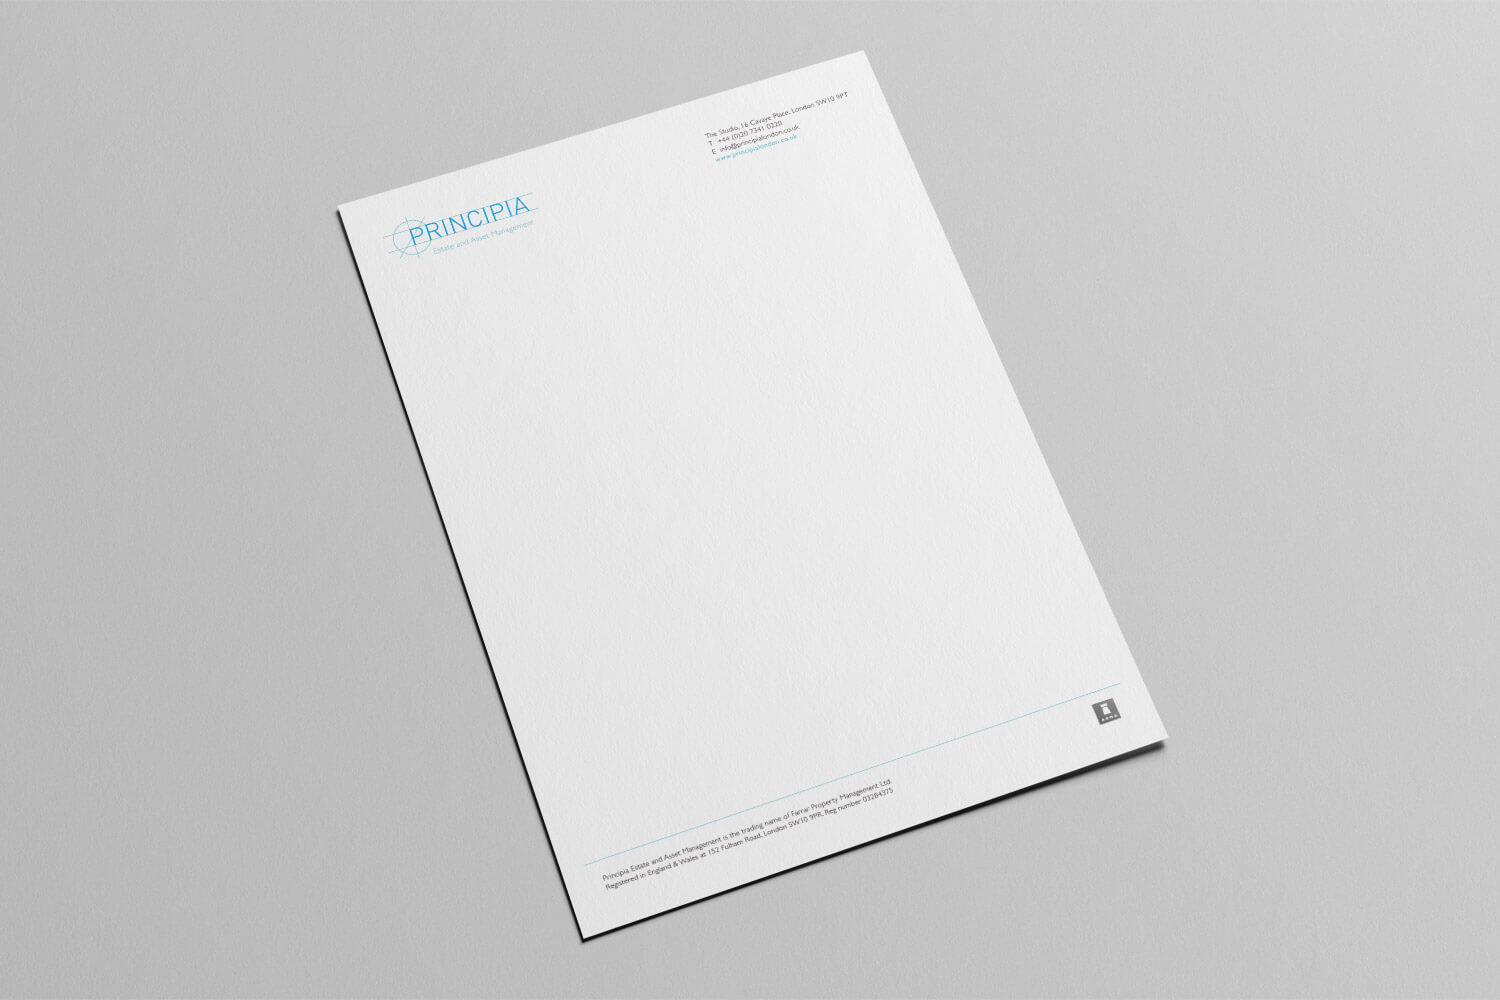 The design for Principia headed letter paper